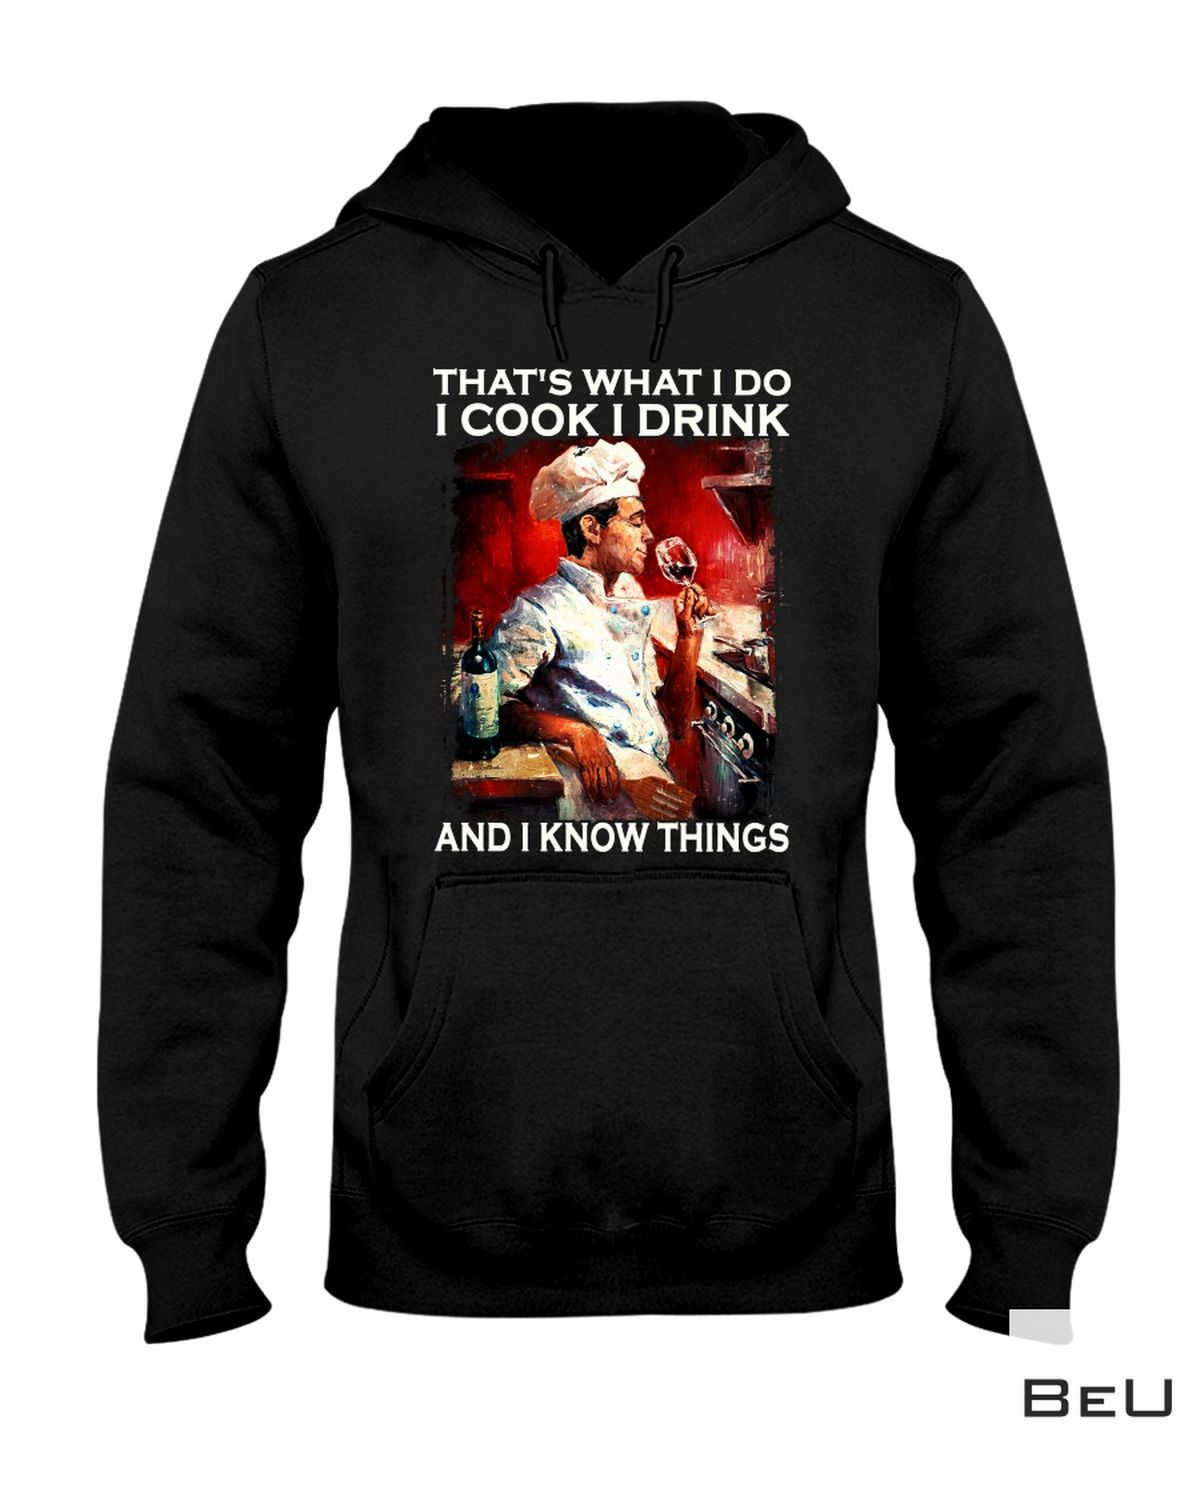 That's What I Do I Cook I Drink And I Know Things Shirt x